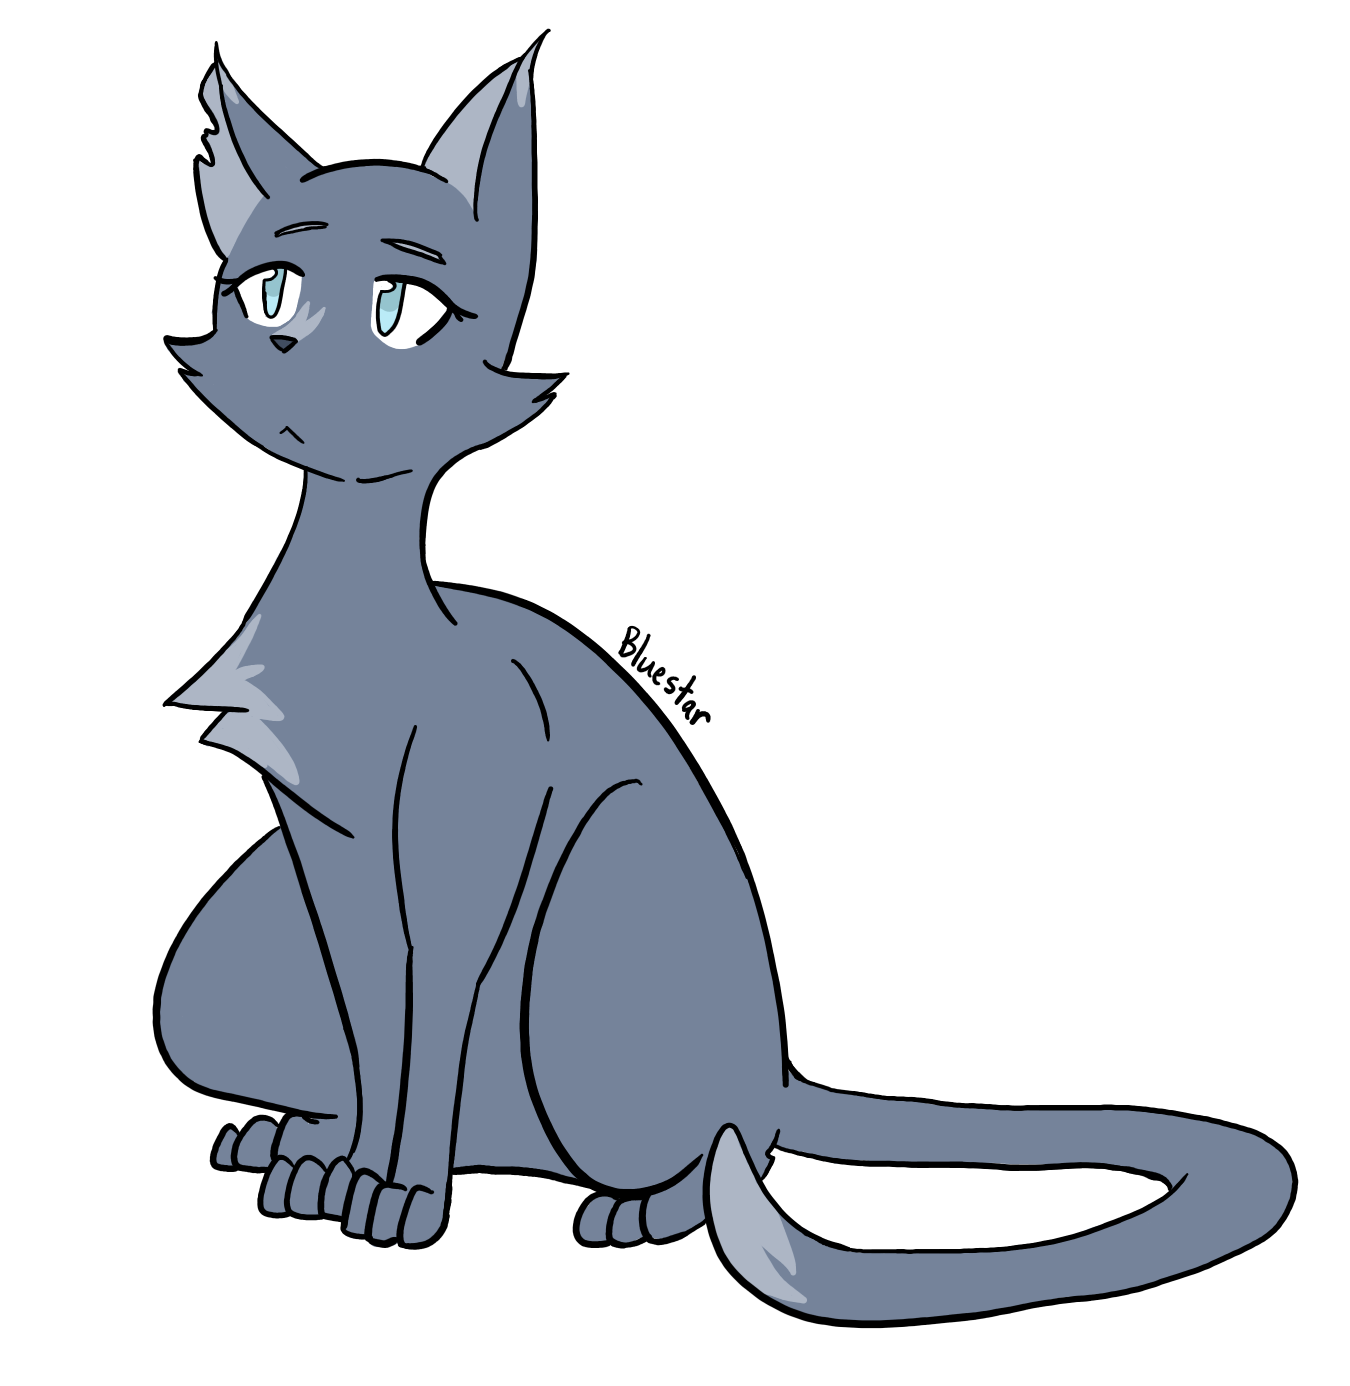 Warrior cat clipart vector transparent download Drawing ALL Warrior Cats Challenge - (Latest: Ravenpaw) | Warrior ... vector transparent download